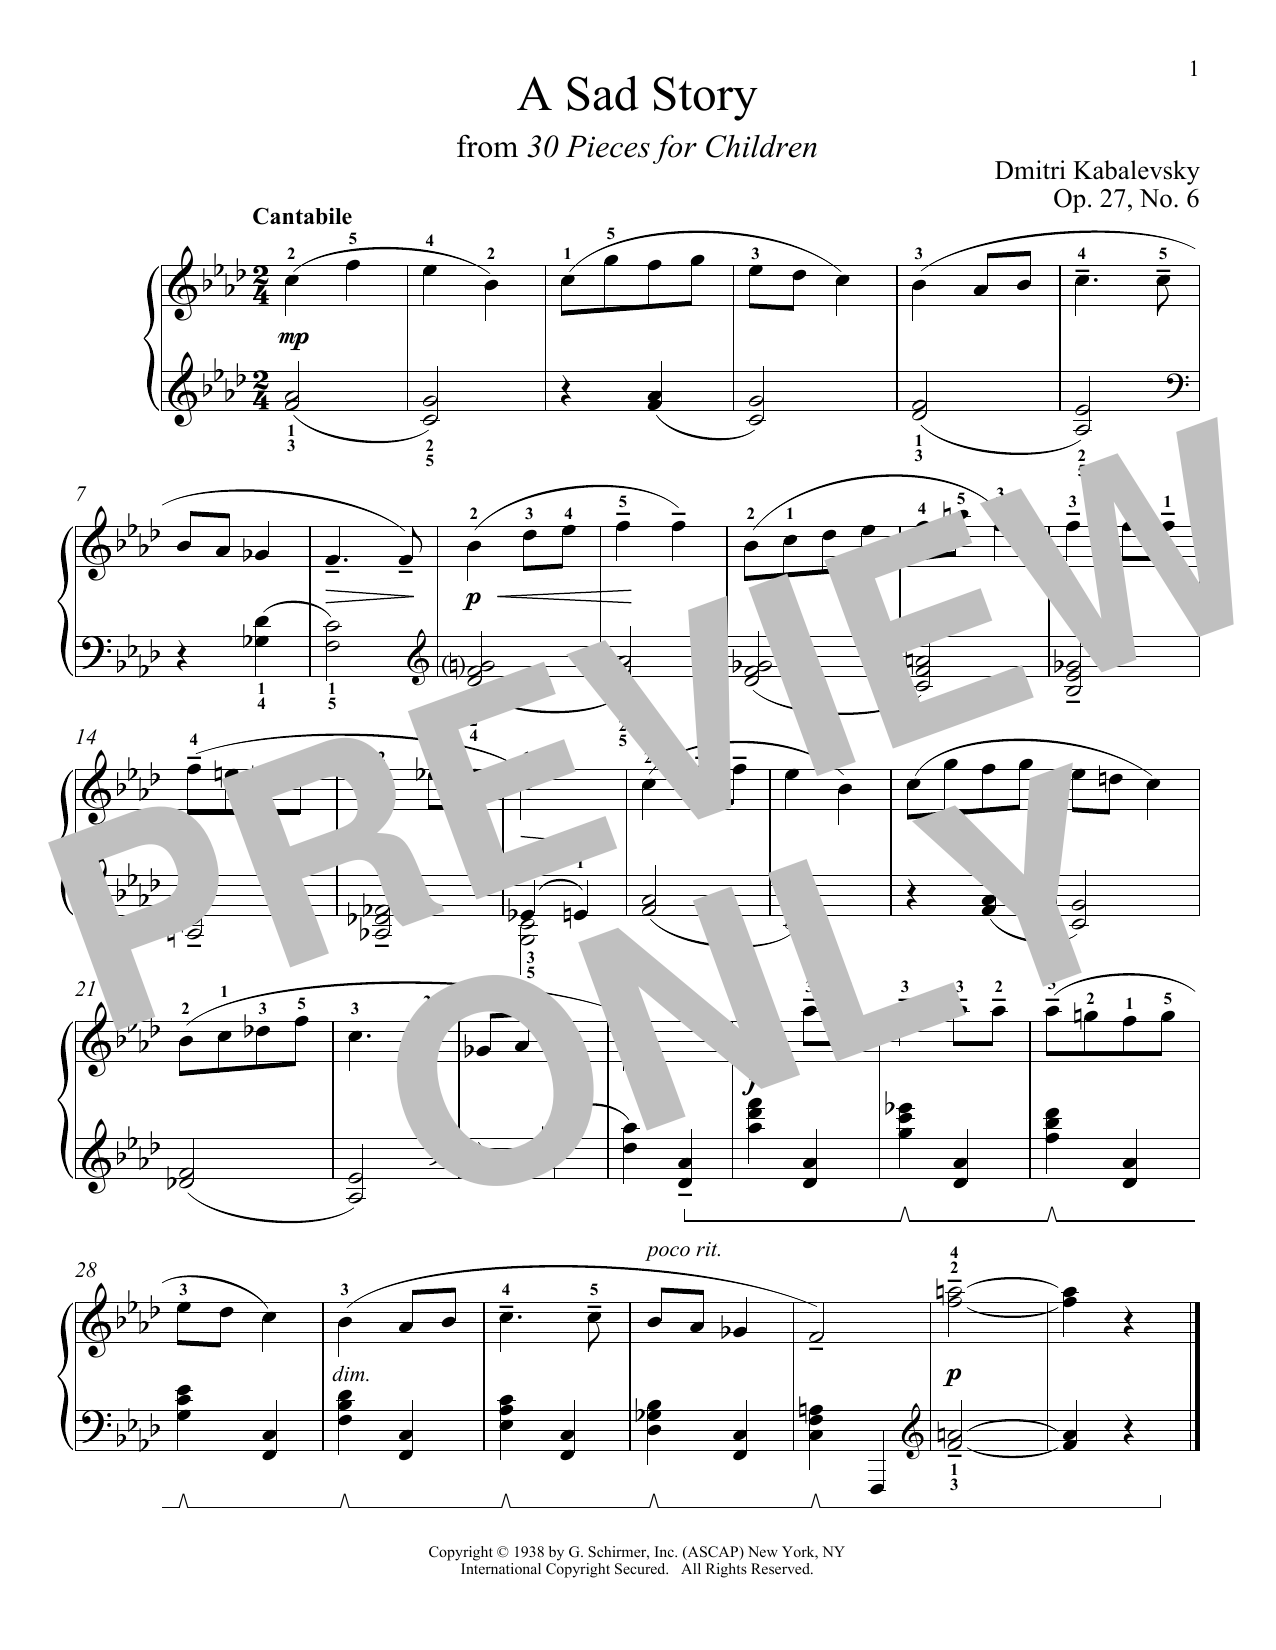 Download Dmitri Kabalevsky 'A Sad Story, Op. 27, No. 6' Digital Sheet Music Notes & Chords and start playing in minutes